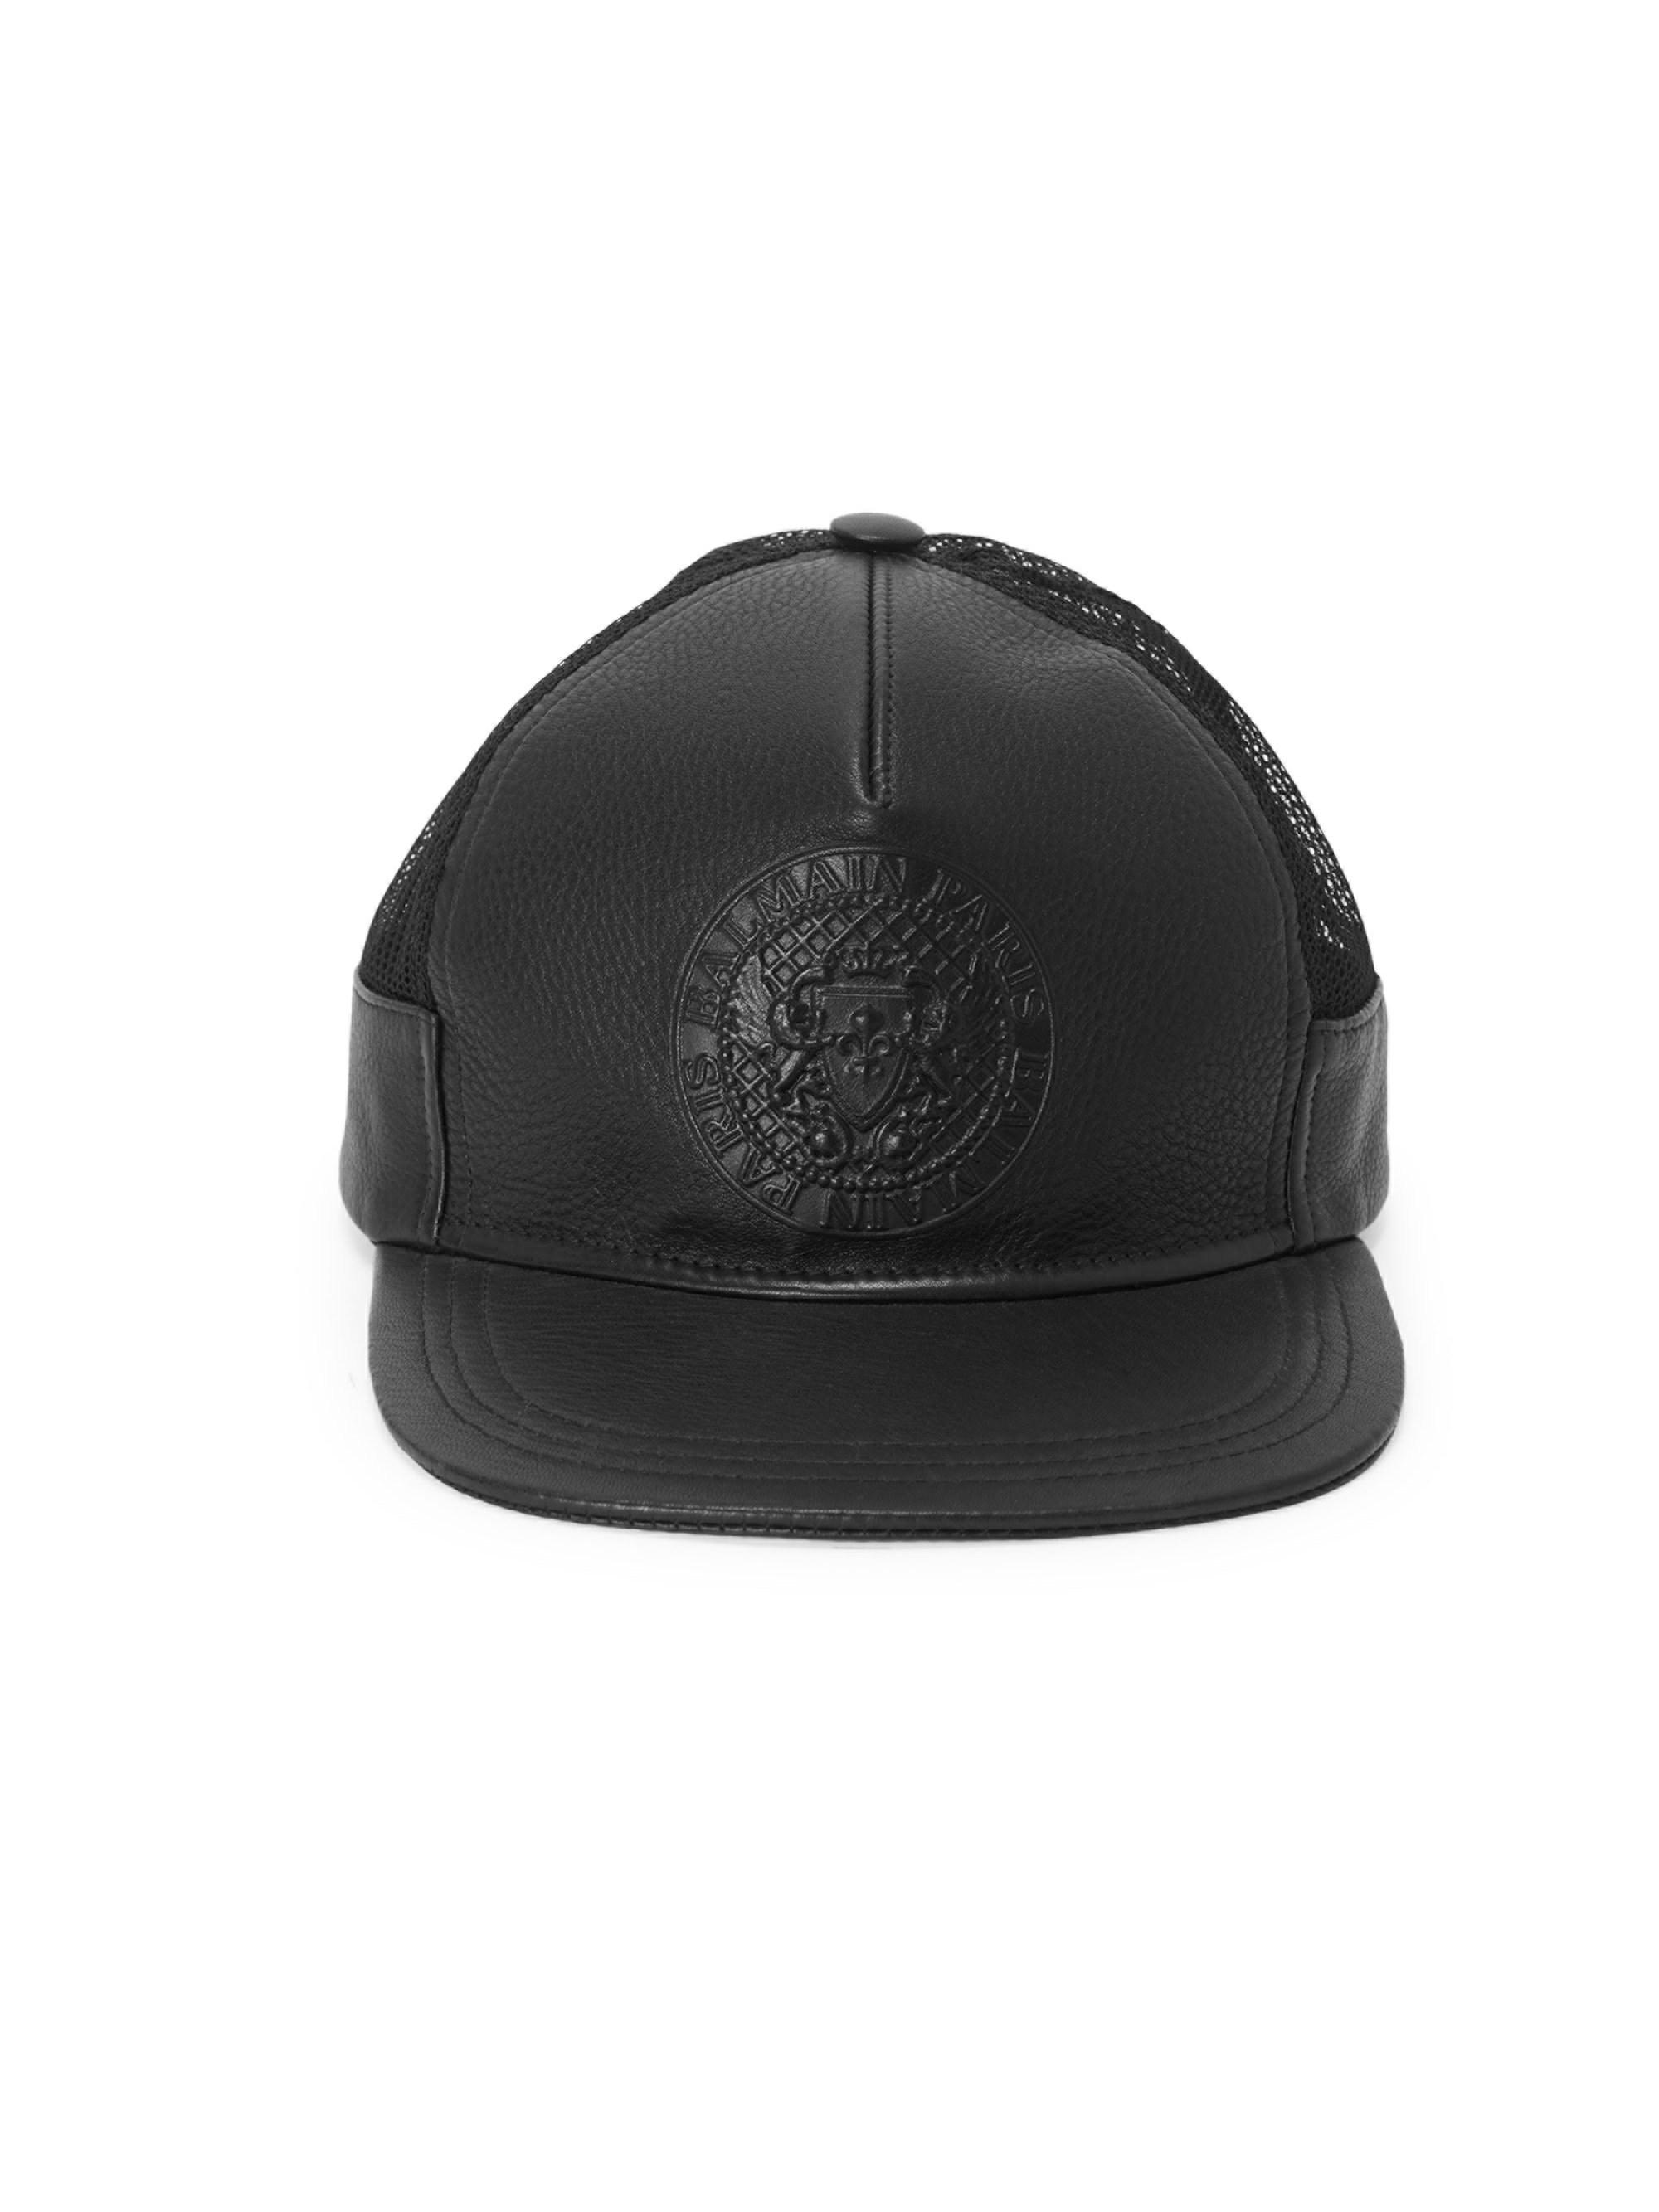 View fullscreen online store  Balmain - Black Logo Crest Embossed Trucker  Hat for Men - Lyst. View fullscreen timeless  Givenchy ... c19d50e6e211